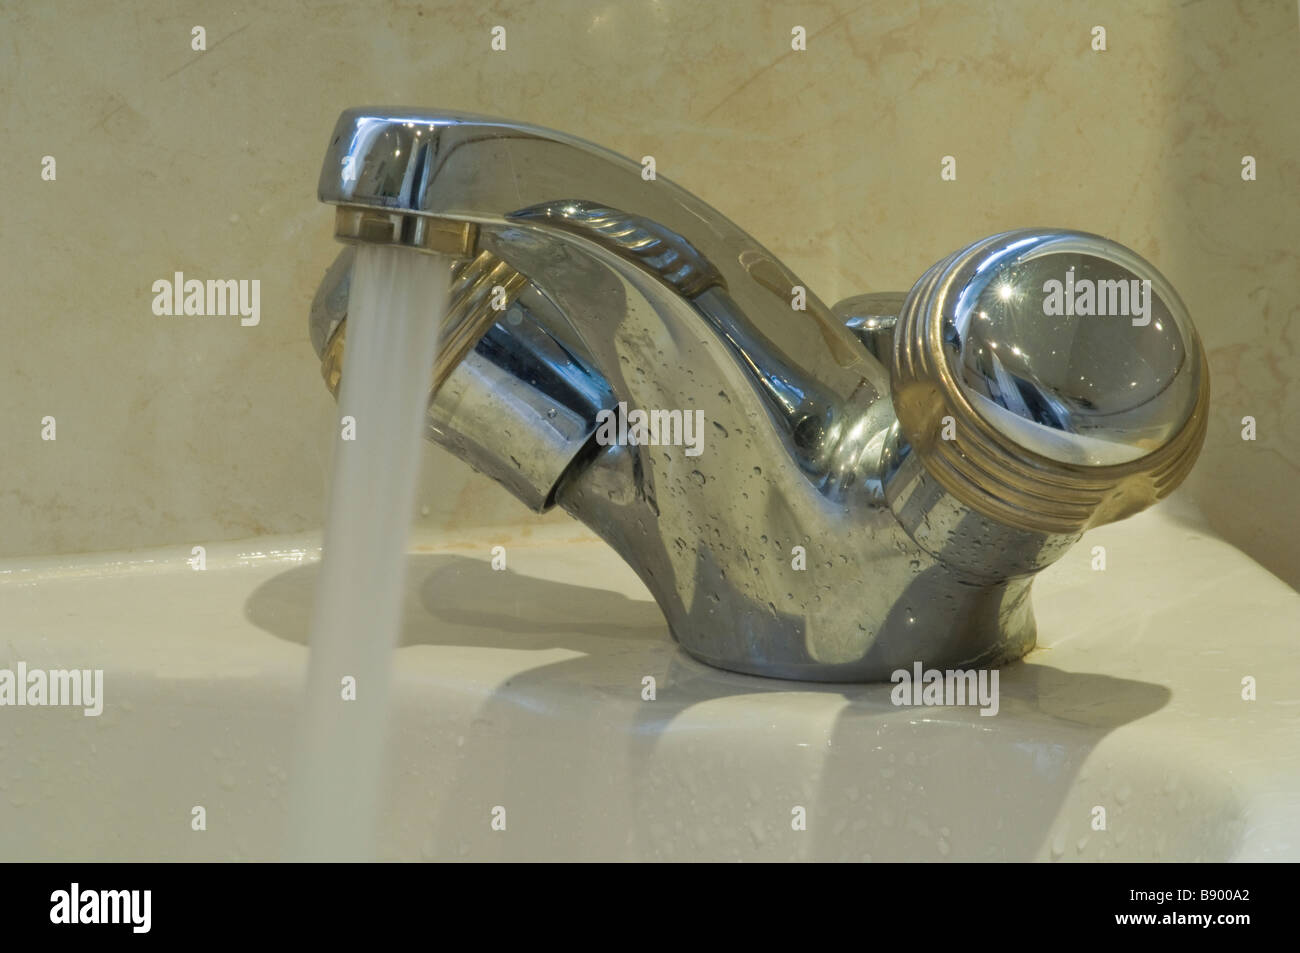 Bathroom tap with the water left running to illustrate wasting water - Stock Image